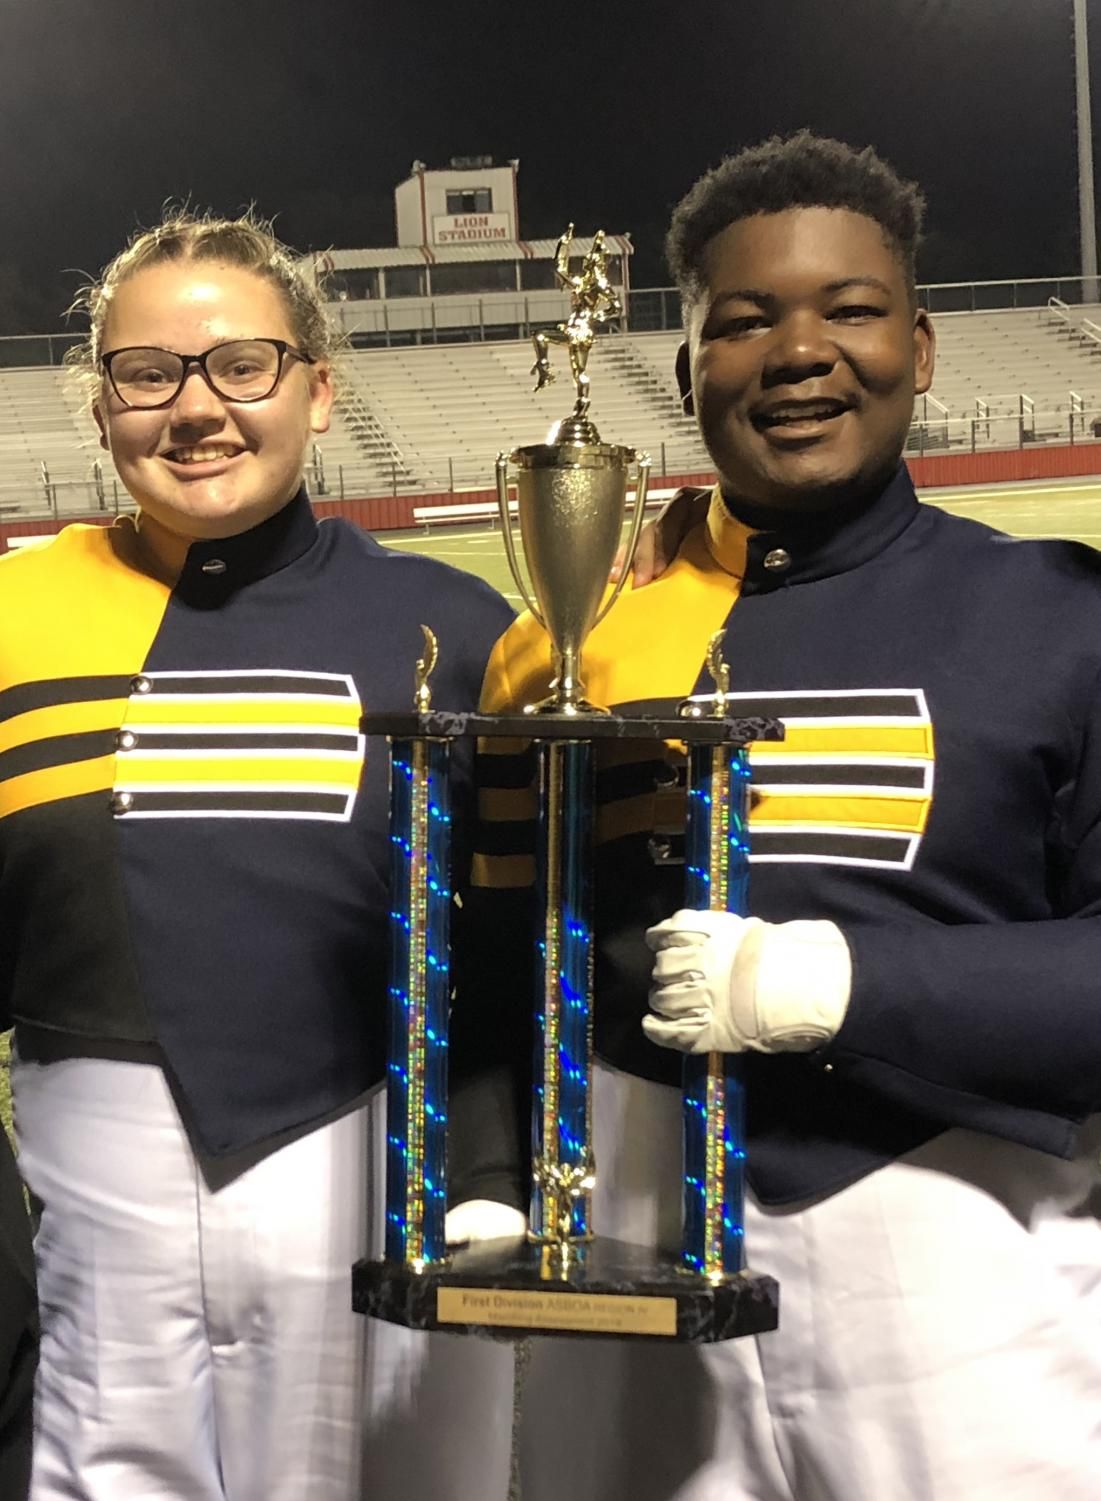 Drum Majors Catherine Arnold and Markell Cox  with the Regional Trophy